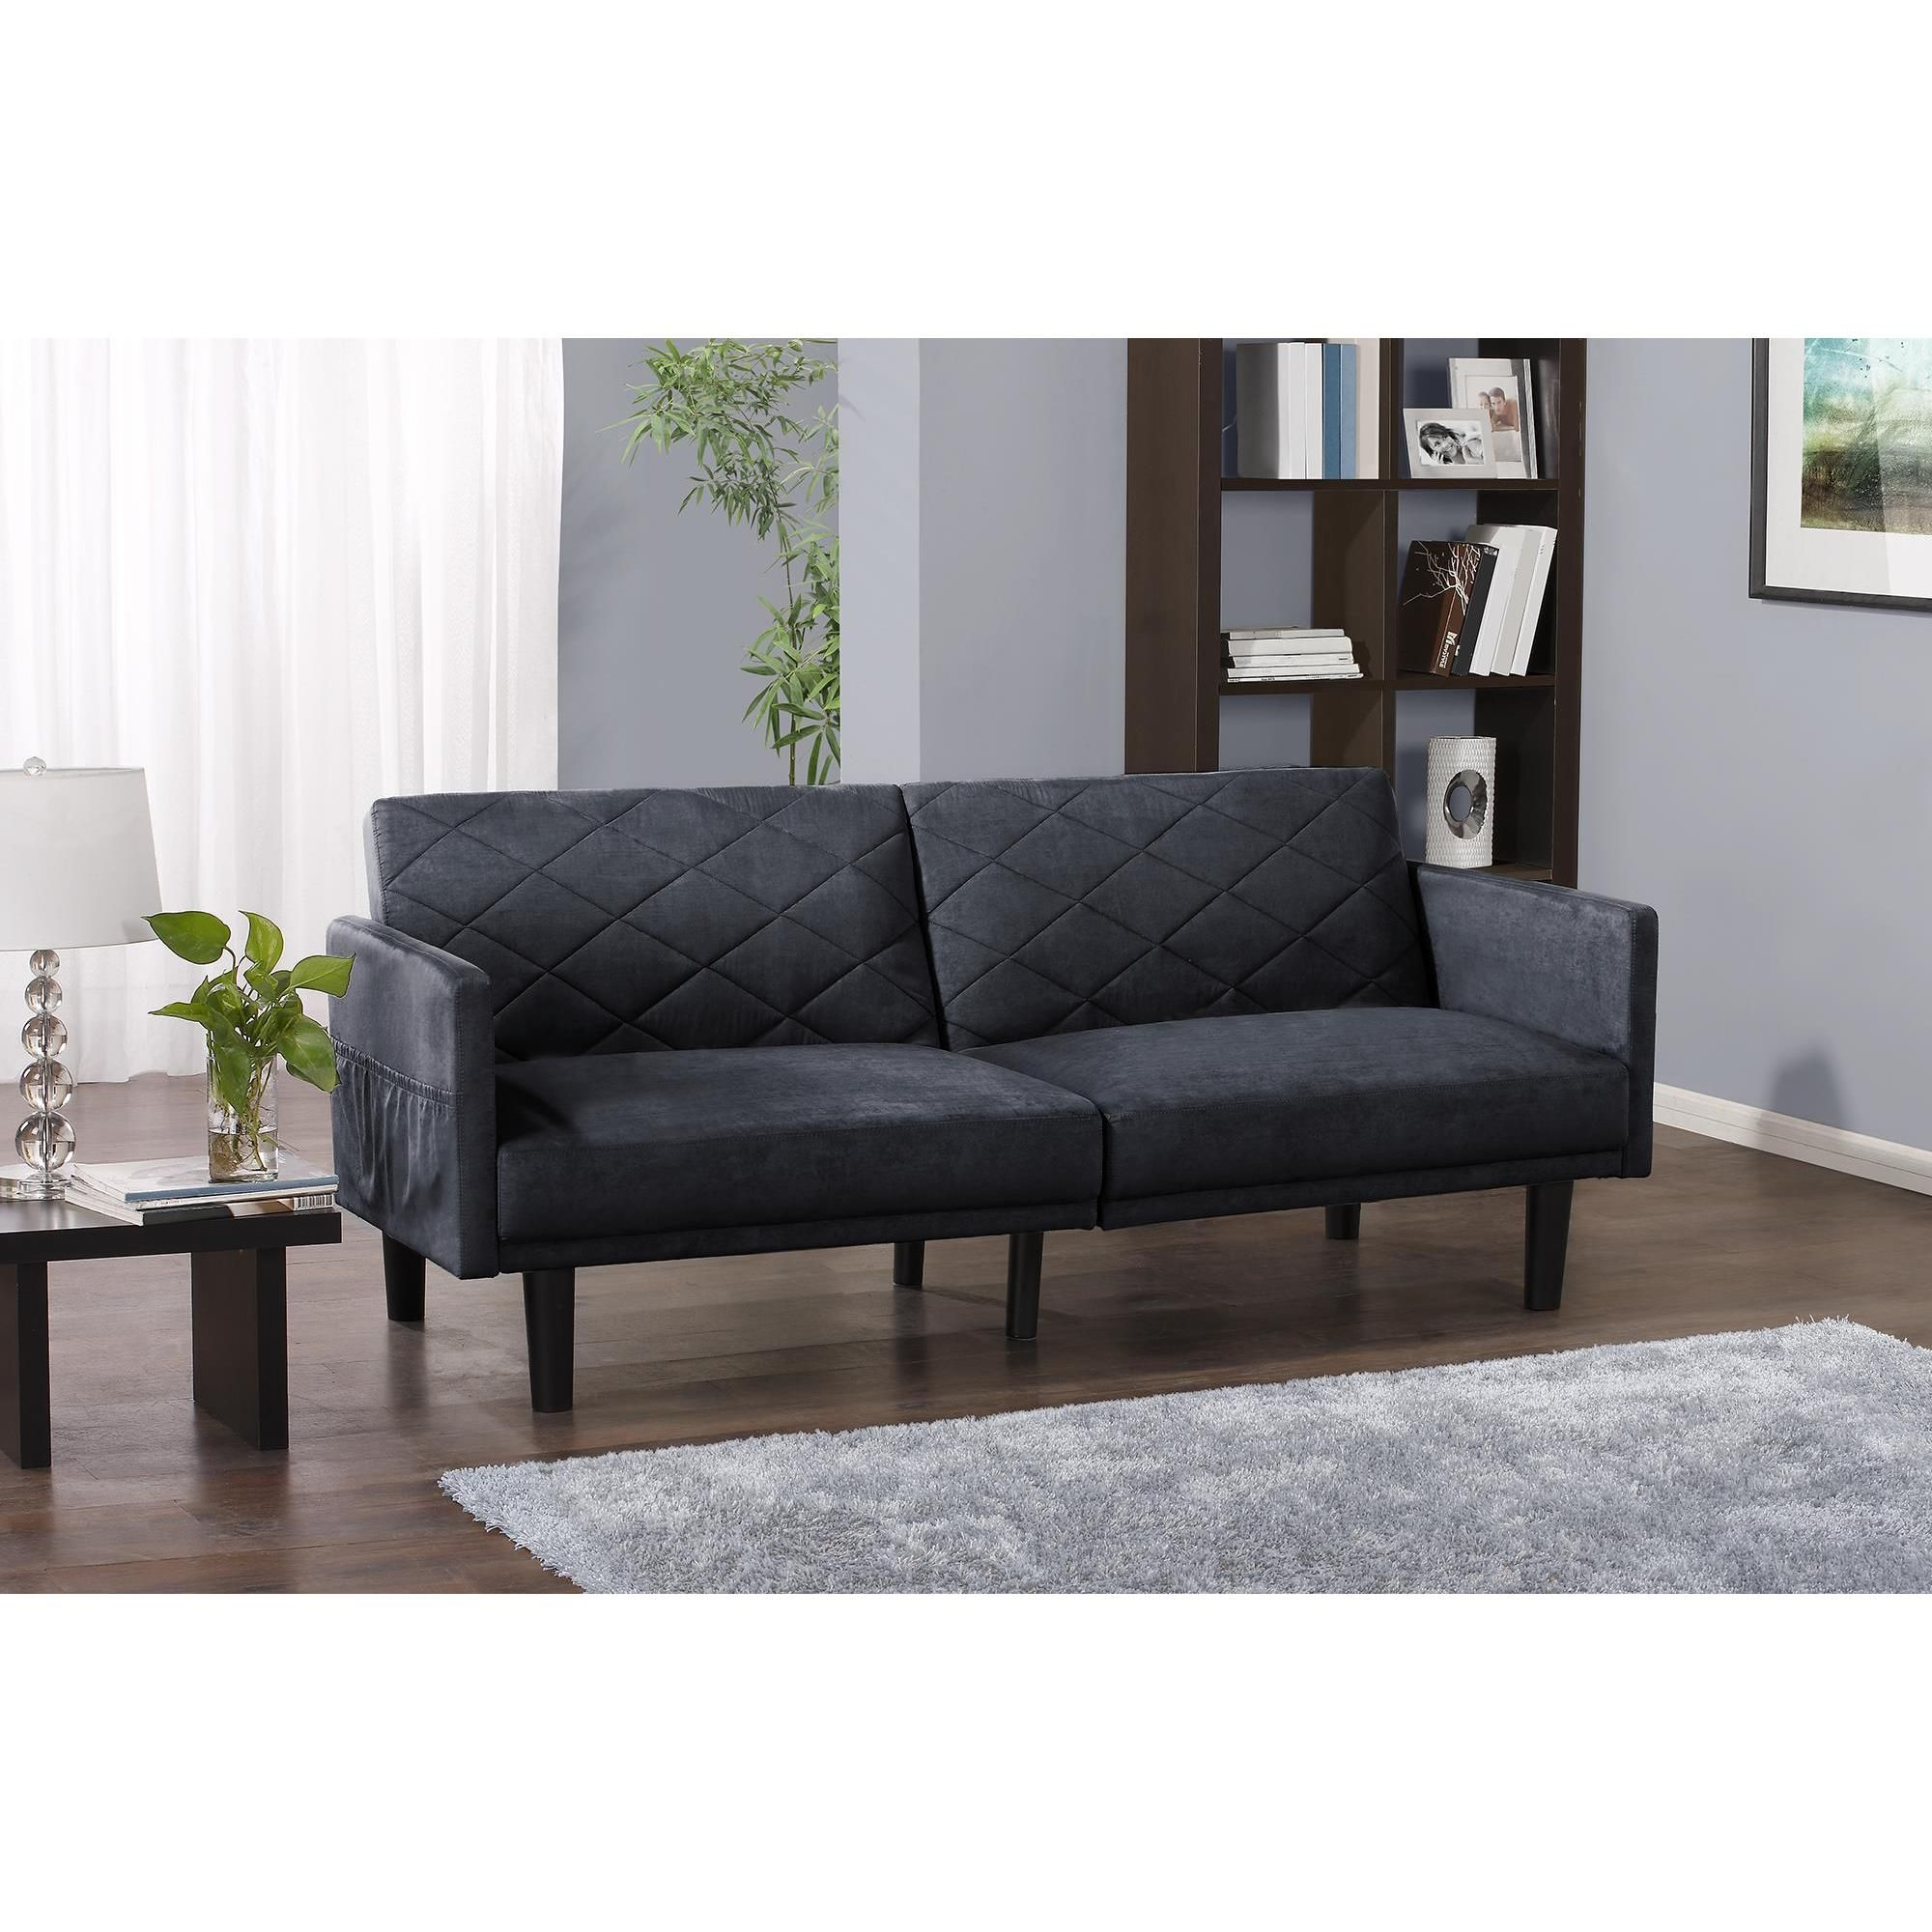 Living Room Ideas To Steal For Comforting Vibe Found In: The Cortland Microfiber Futon From DHP With Its Clean And